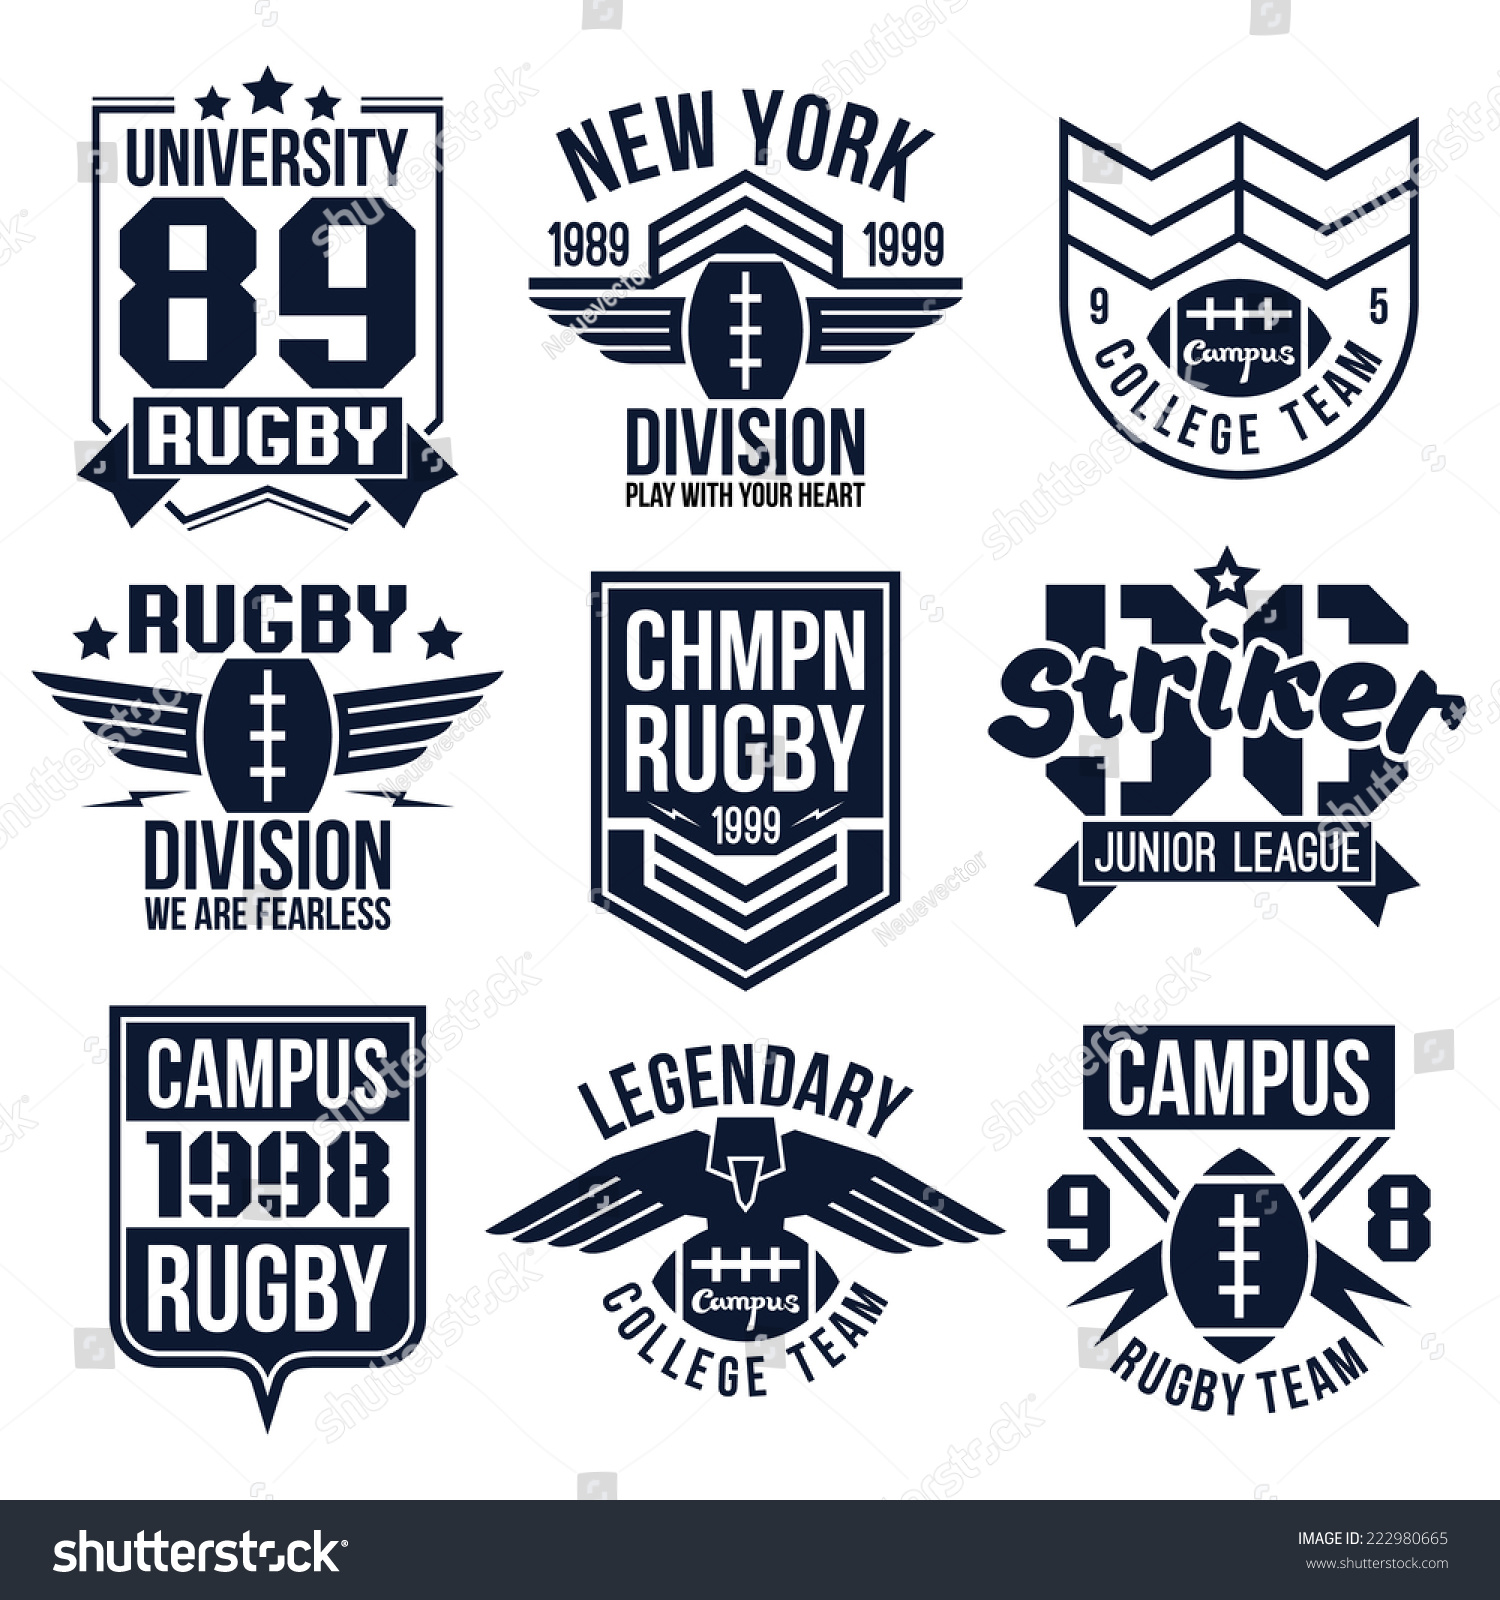 Design t shirt rugby - College Rugby Team Emblems In Retro Vintage Style Graphic Design For T Shirt